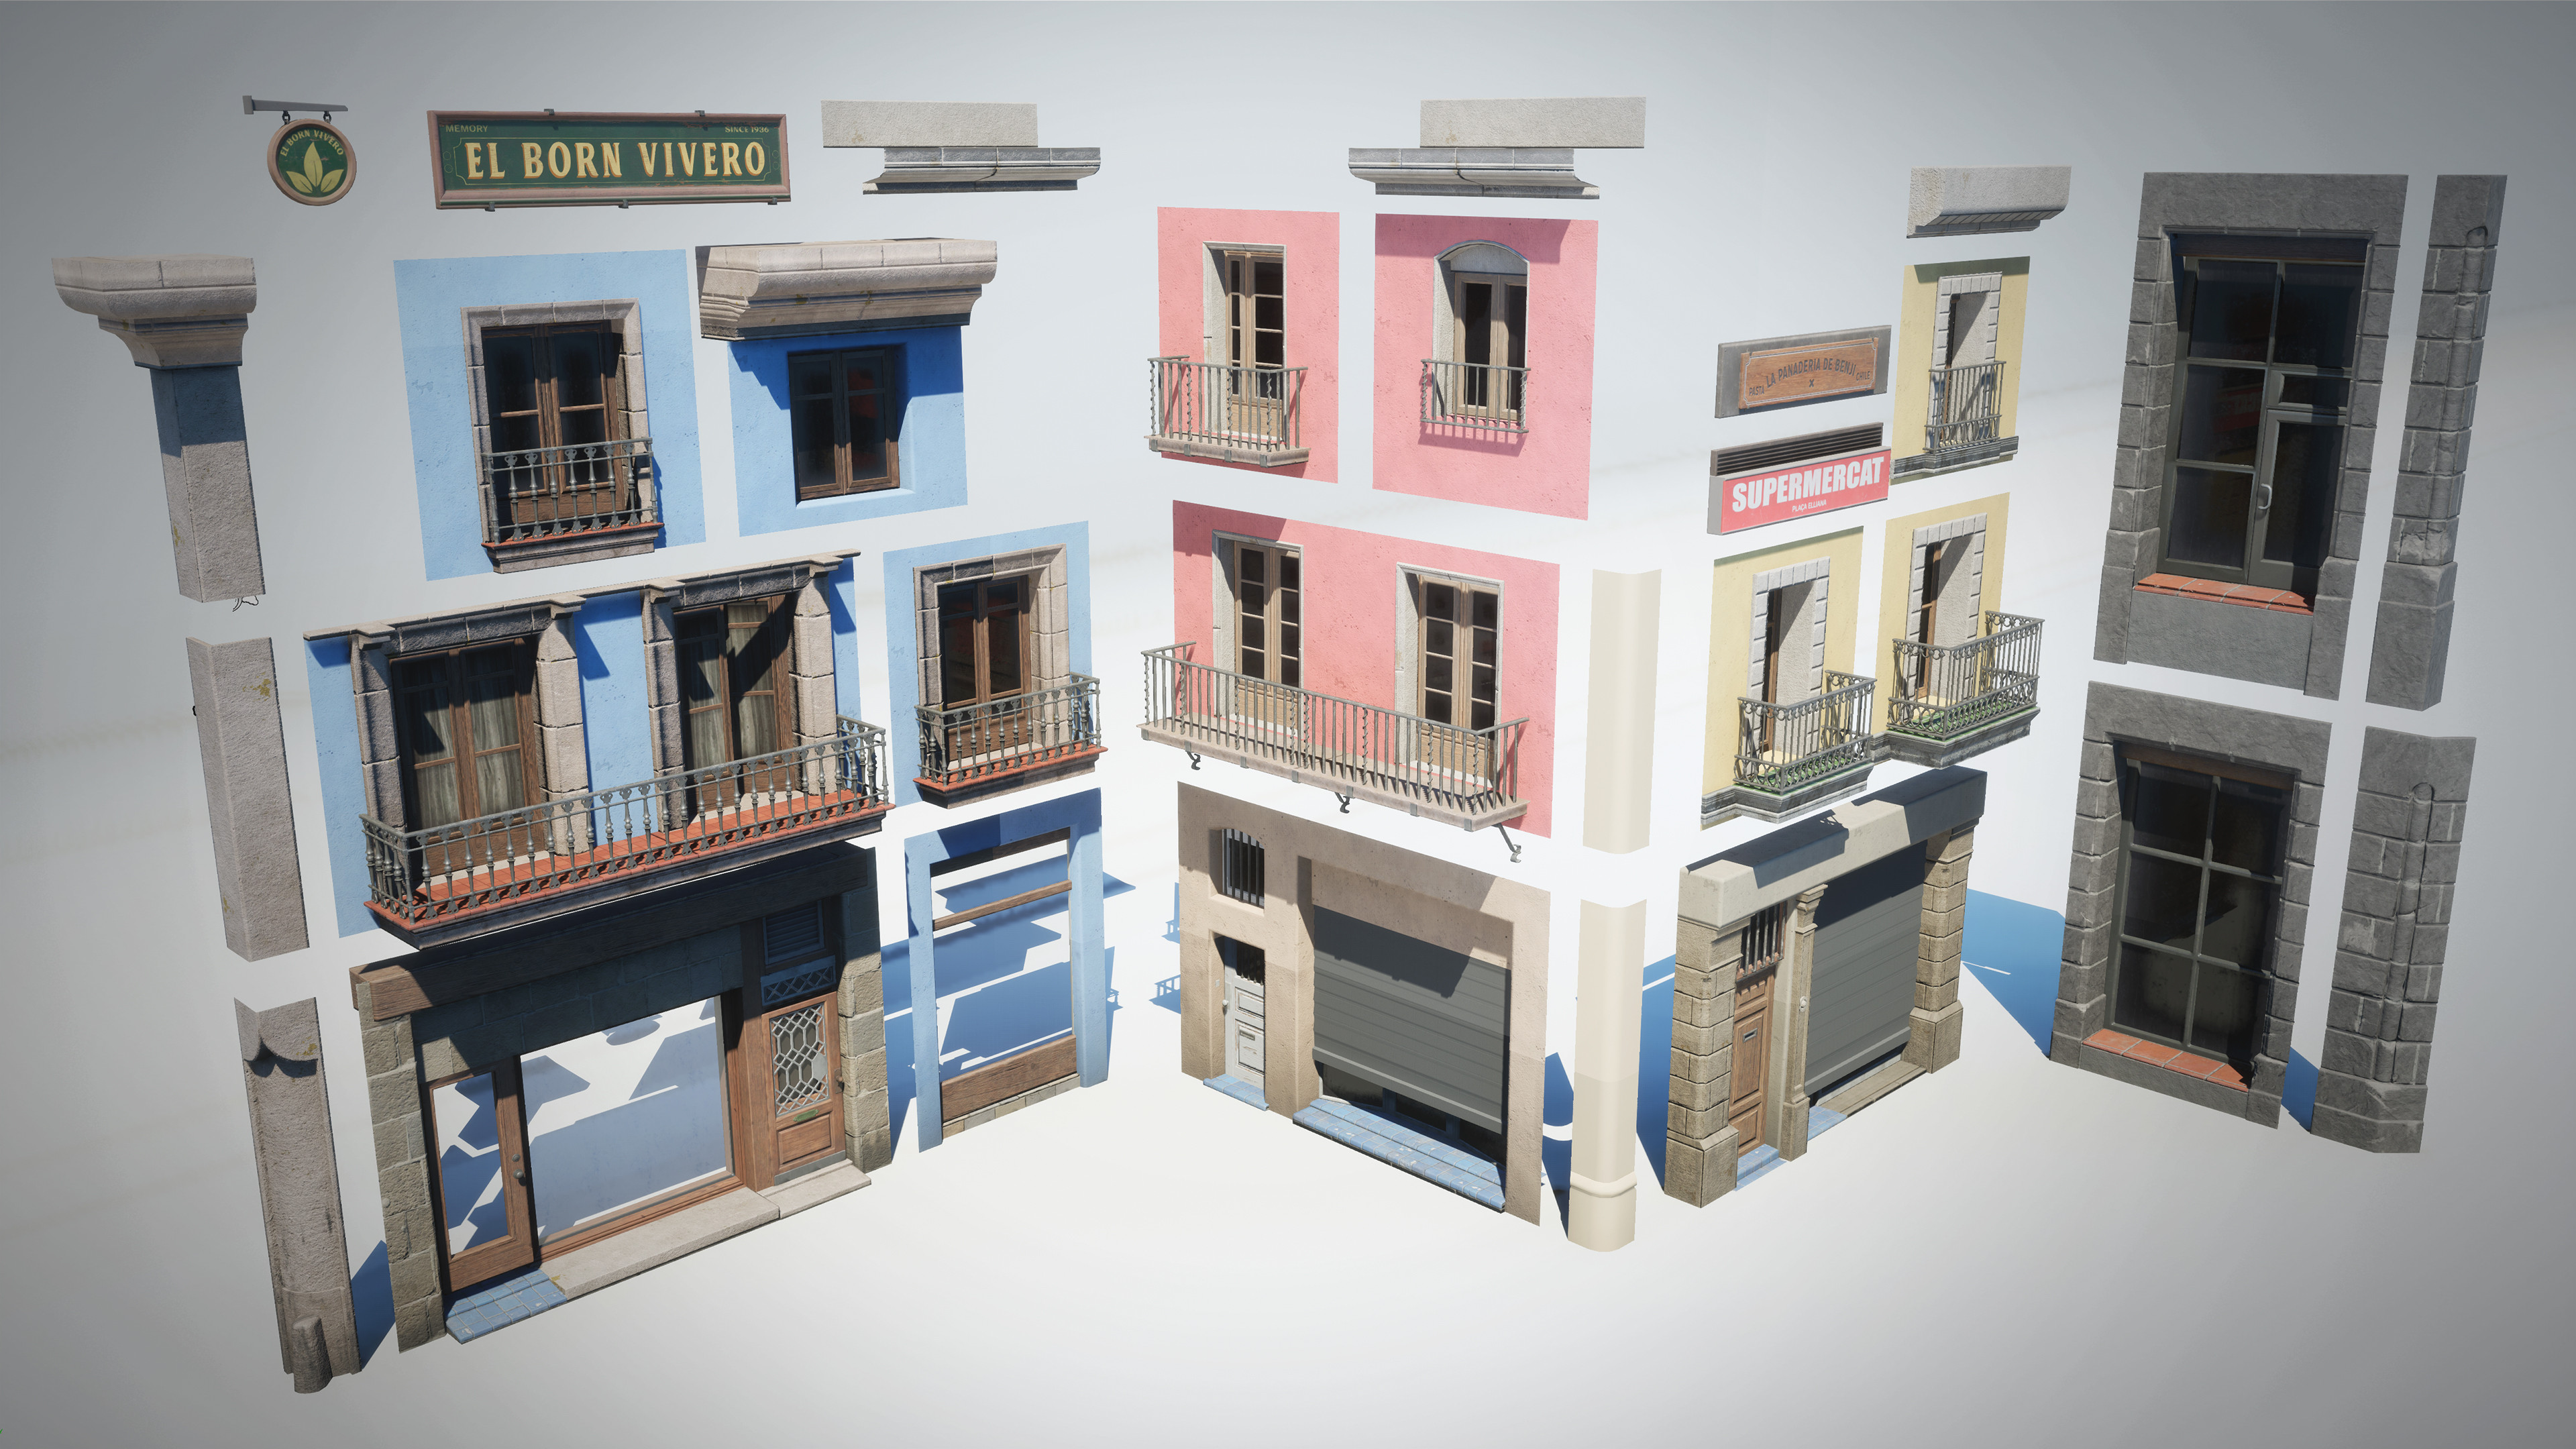 Modular pieces, materials can be freely swapped between them to create new buildings easily.